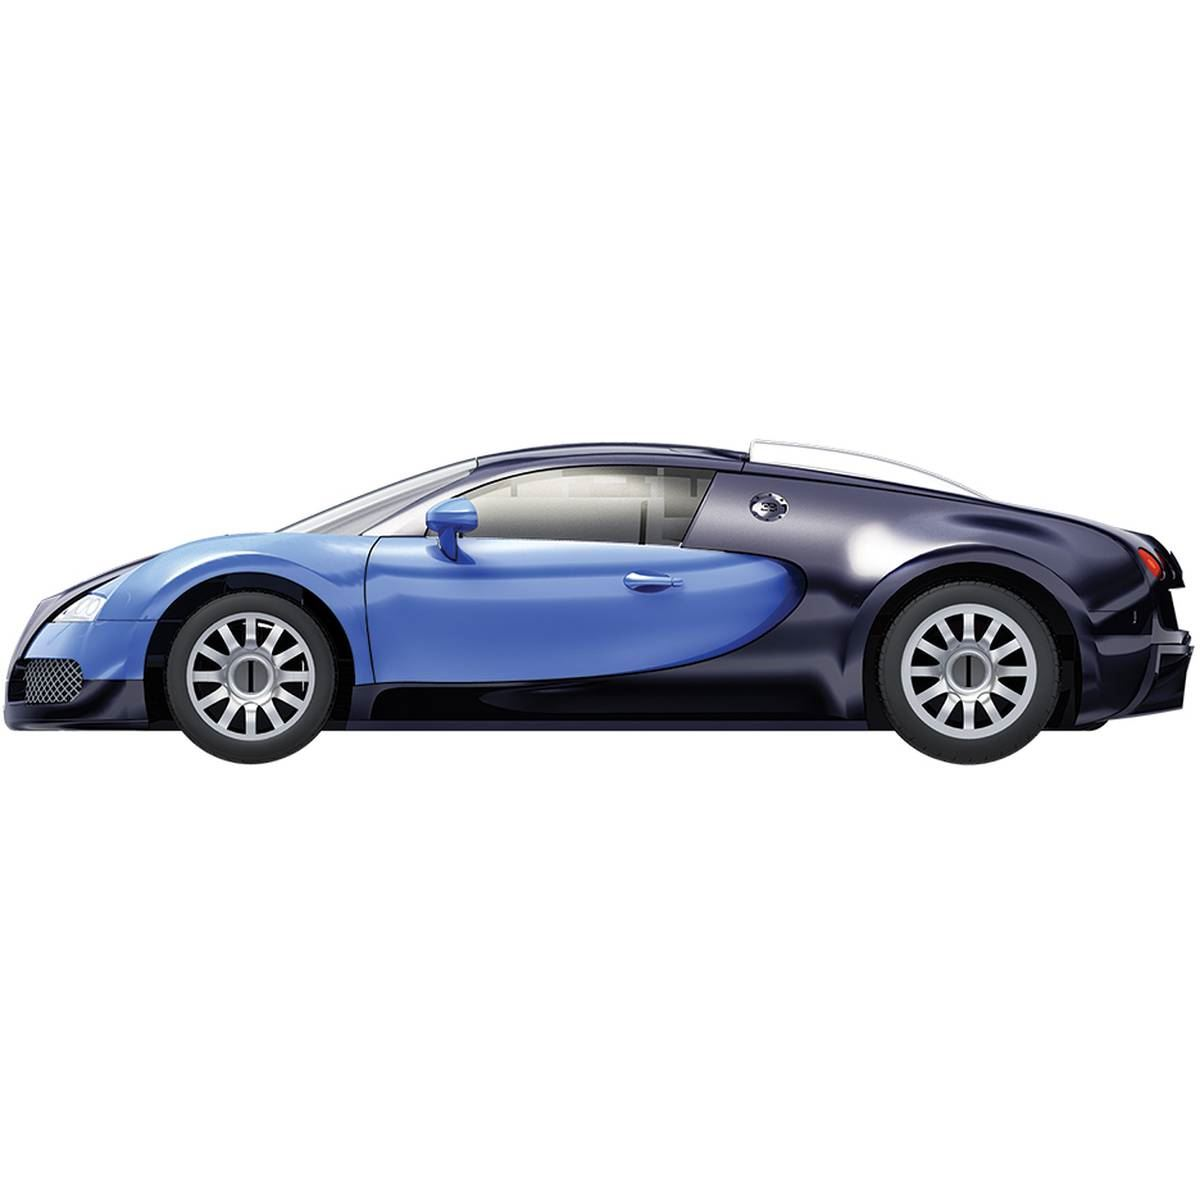 airfix quick build bugatti veyron model kit car construction kids gift toy craft ebay. Black Bedroom Furniture Sets. Home Design Ideas